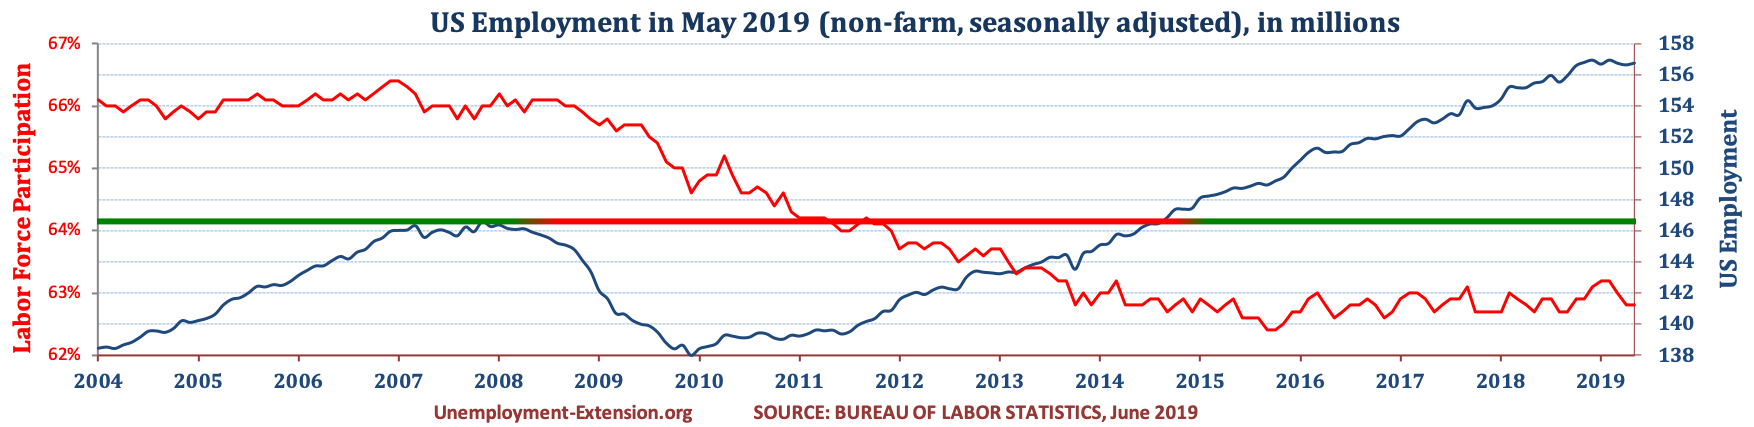 Total US Employment (non-farm, seasonally adjusted) in May of 2019. US economy has lost approximately 10 million jobs in comparison to pre-resession level.